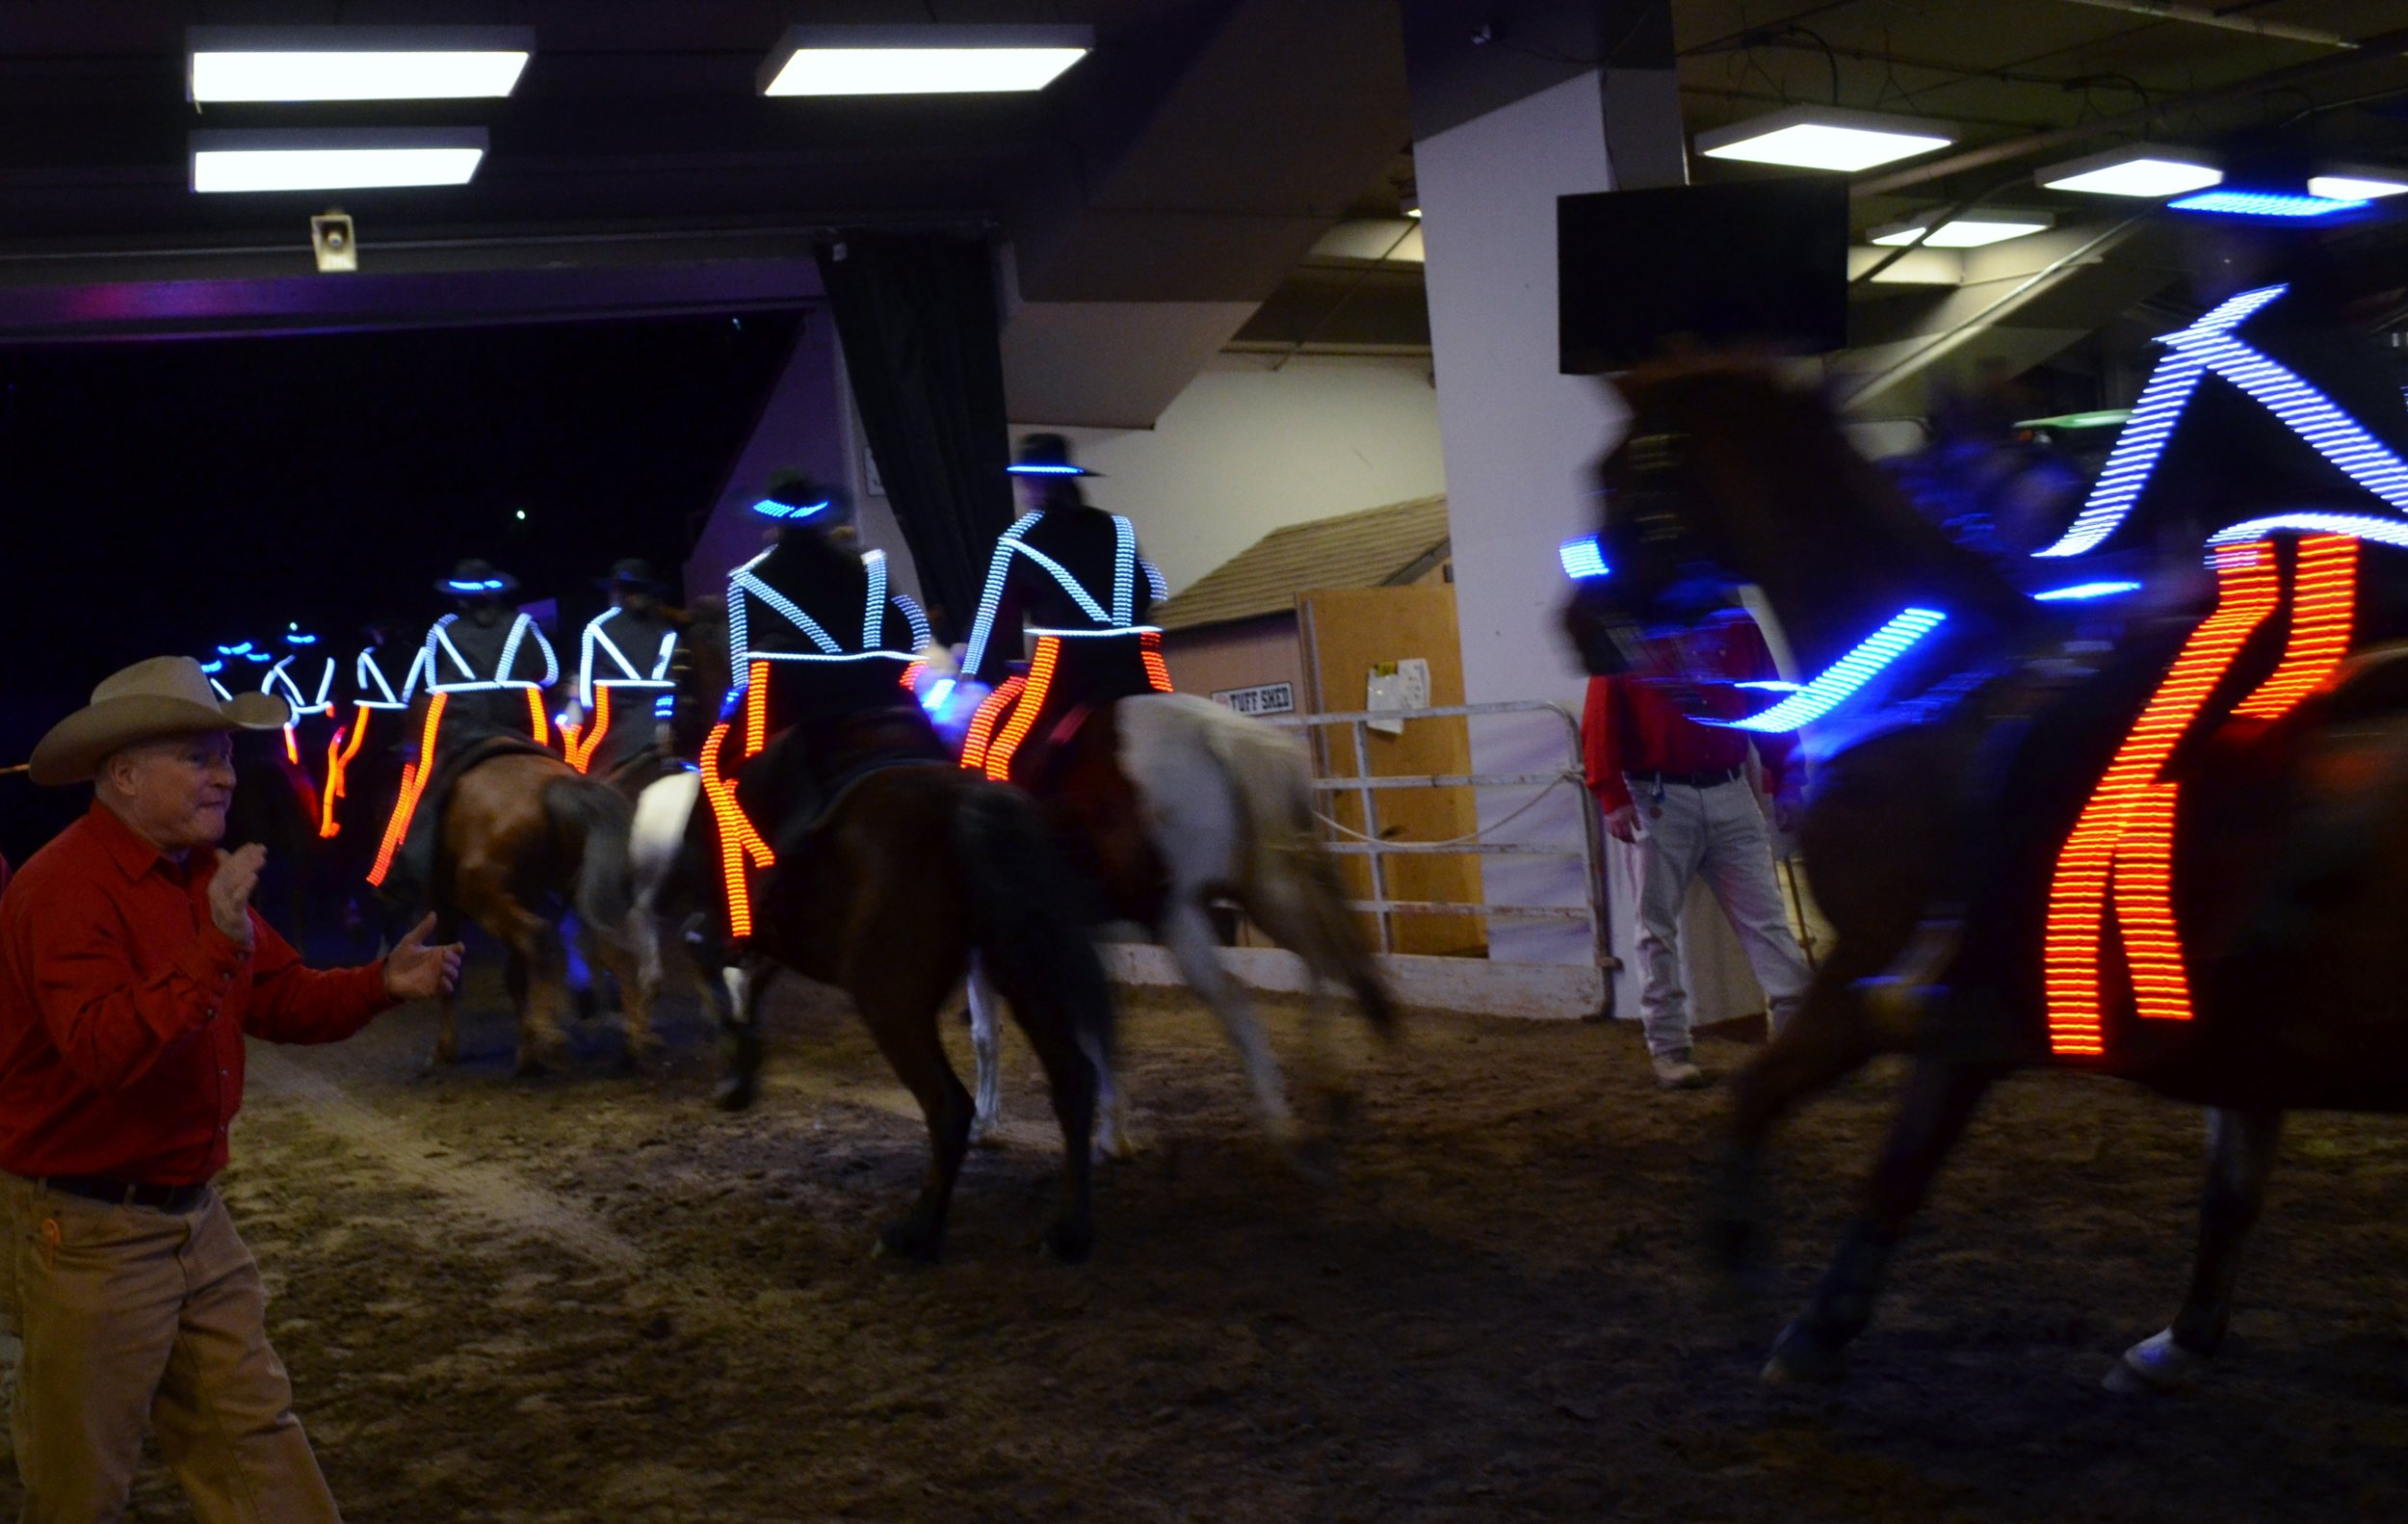 The Westernaires lighted Grand Entry team, in their 3rd generation costumes, dash through the gate and into the arena at the 2016 National Western Stock Show.